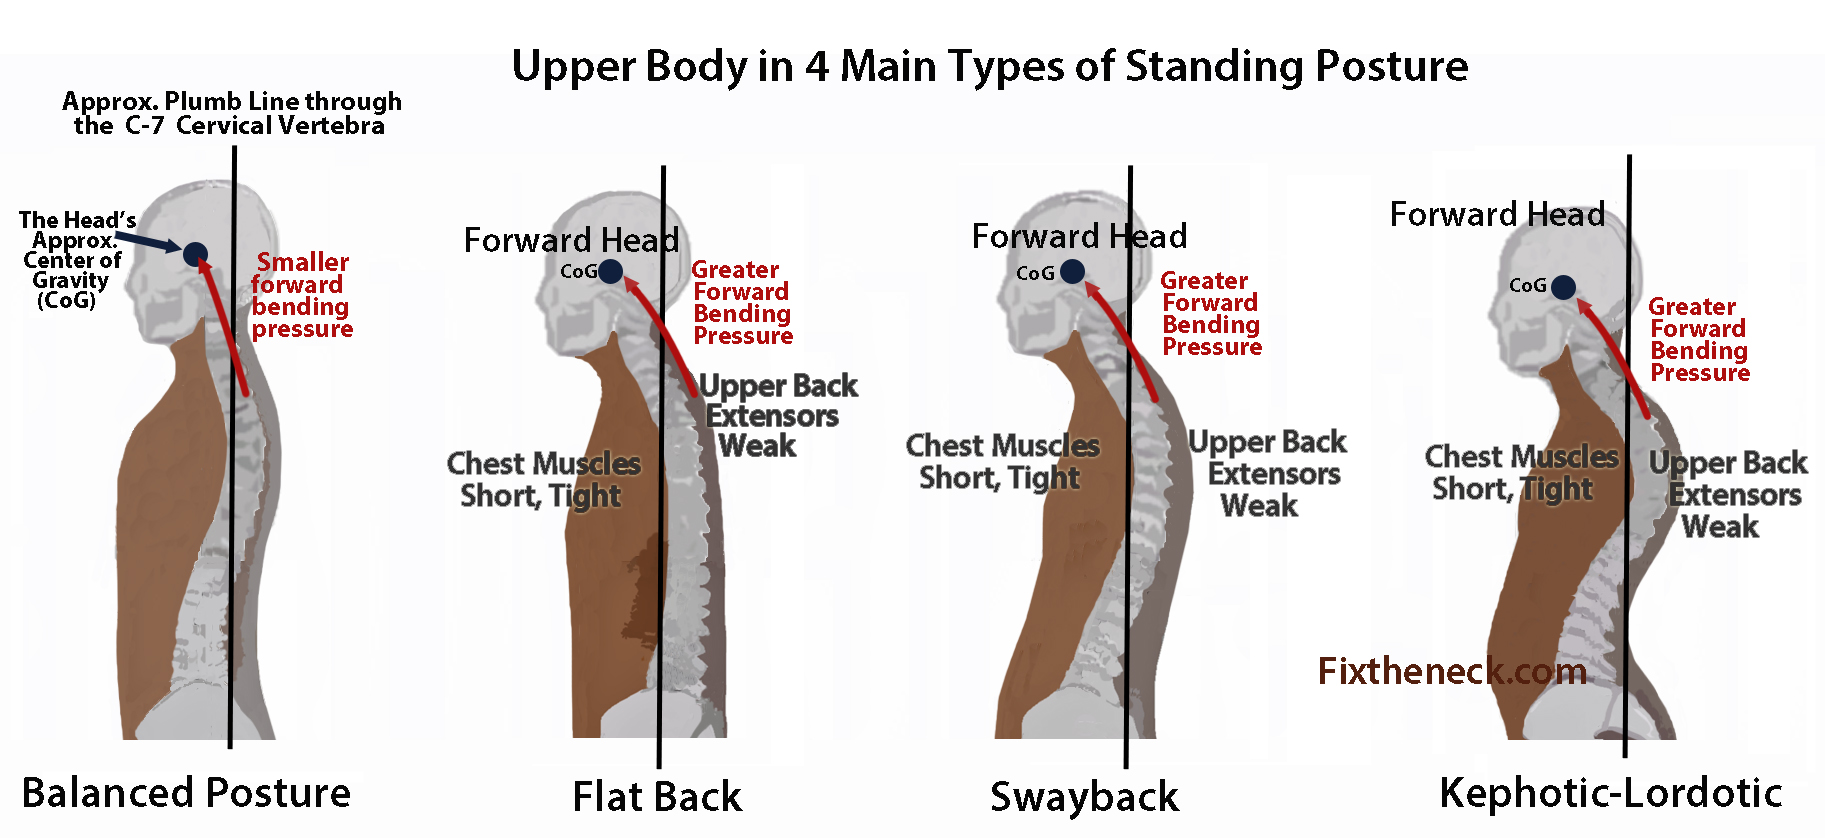 office chair for lower back pain chiropractic wobble benefits poor posture treatment - snyder & wellness